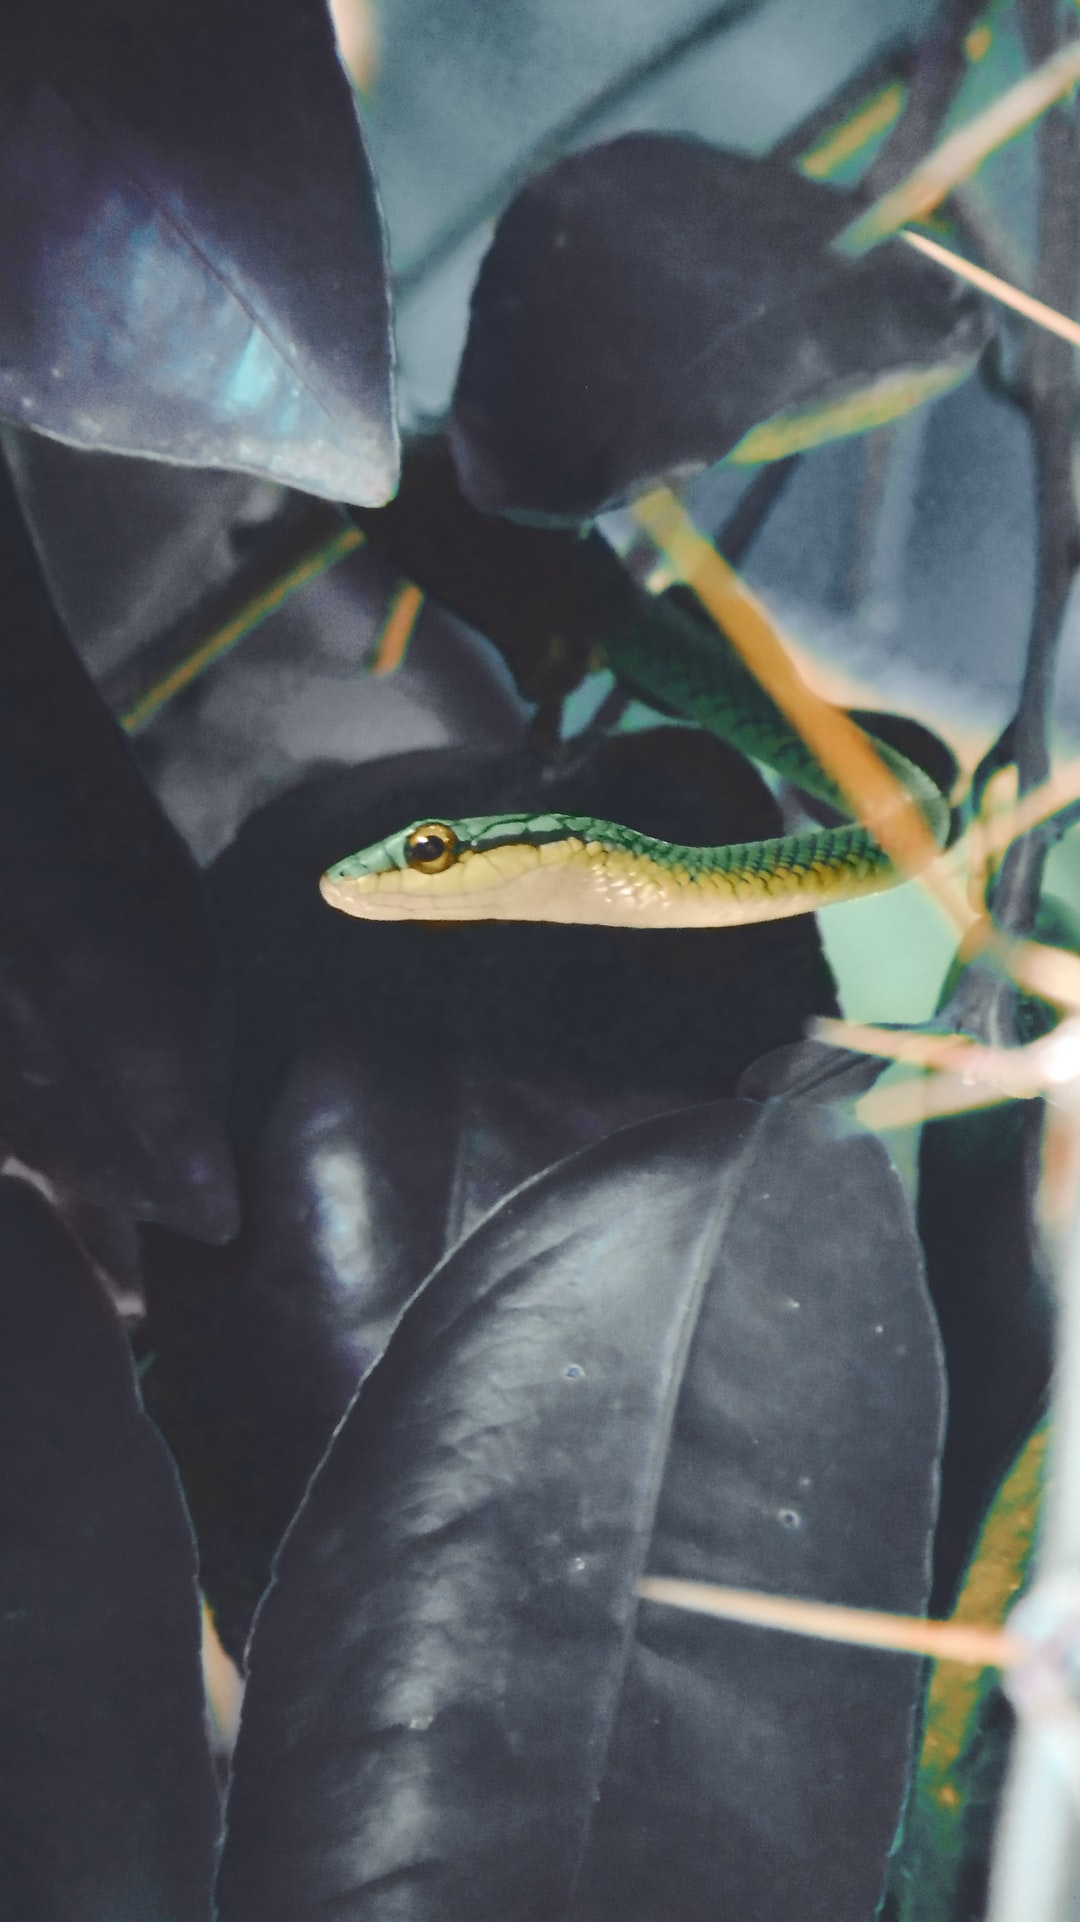 Leptophis ahaetulla, commonly known as the Lora or parrot snake, is a species of medium-sized slender snake of the family Colubridae. It is endemic to Central America and northern South America.